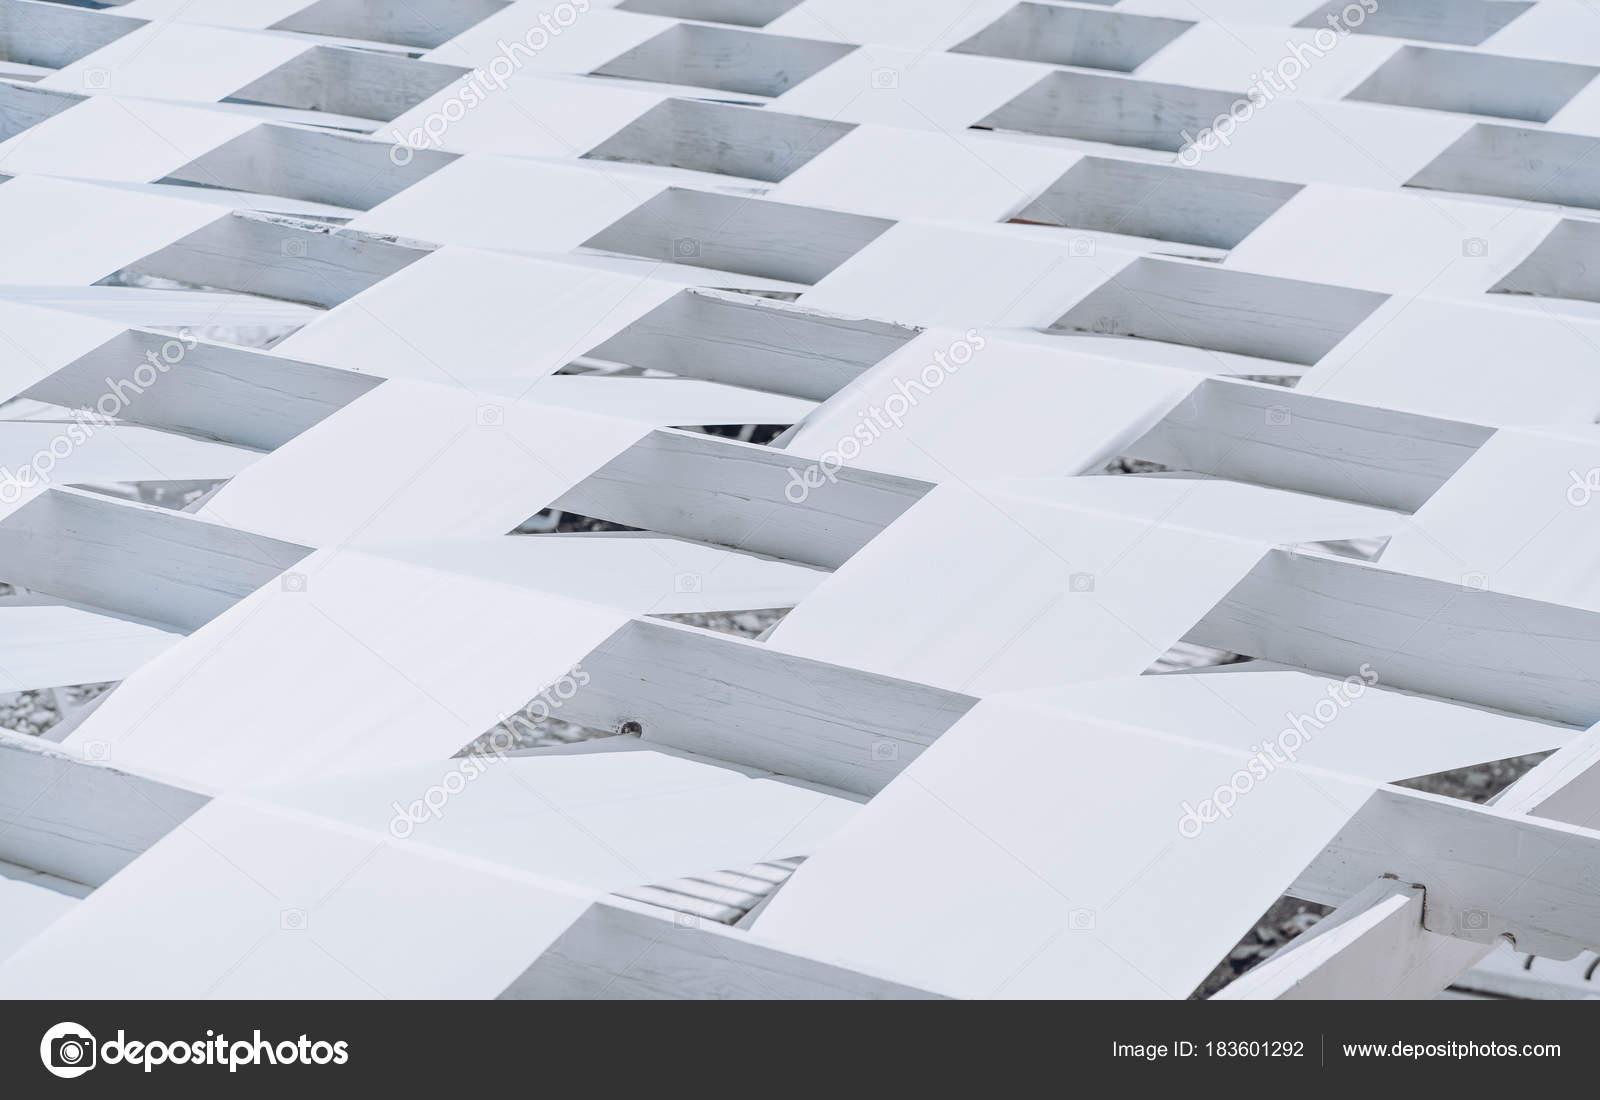 Lit Fabric Fabric Soft Roofing Stock Photo Skynextphoto 183601292